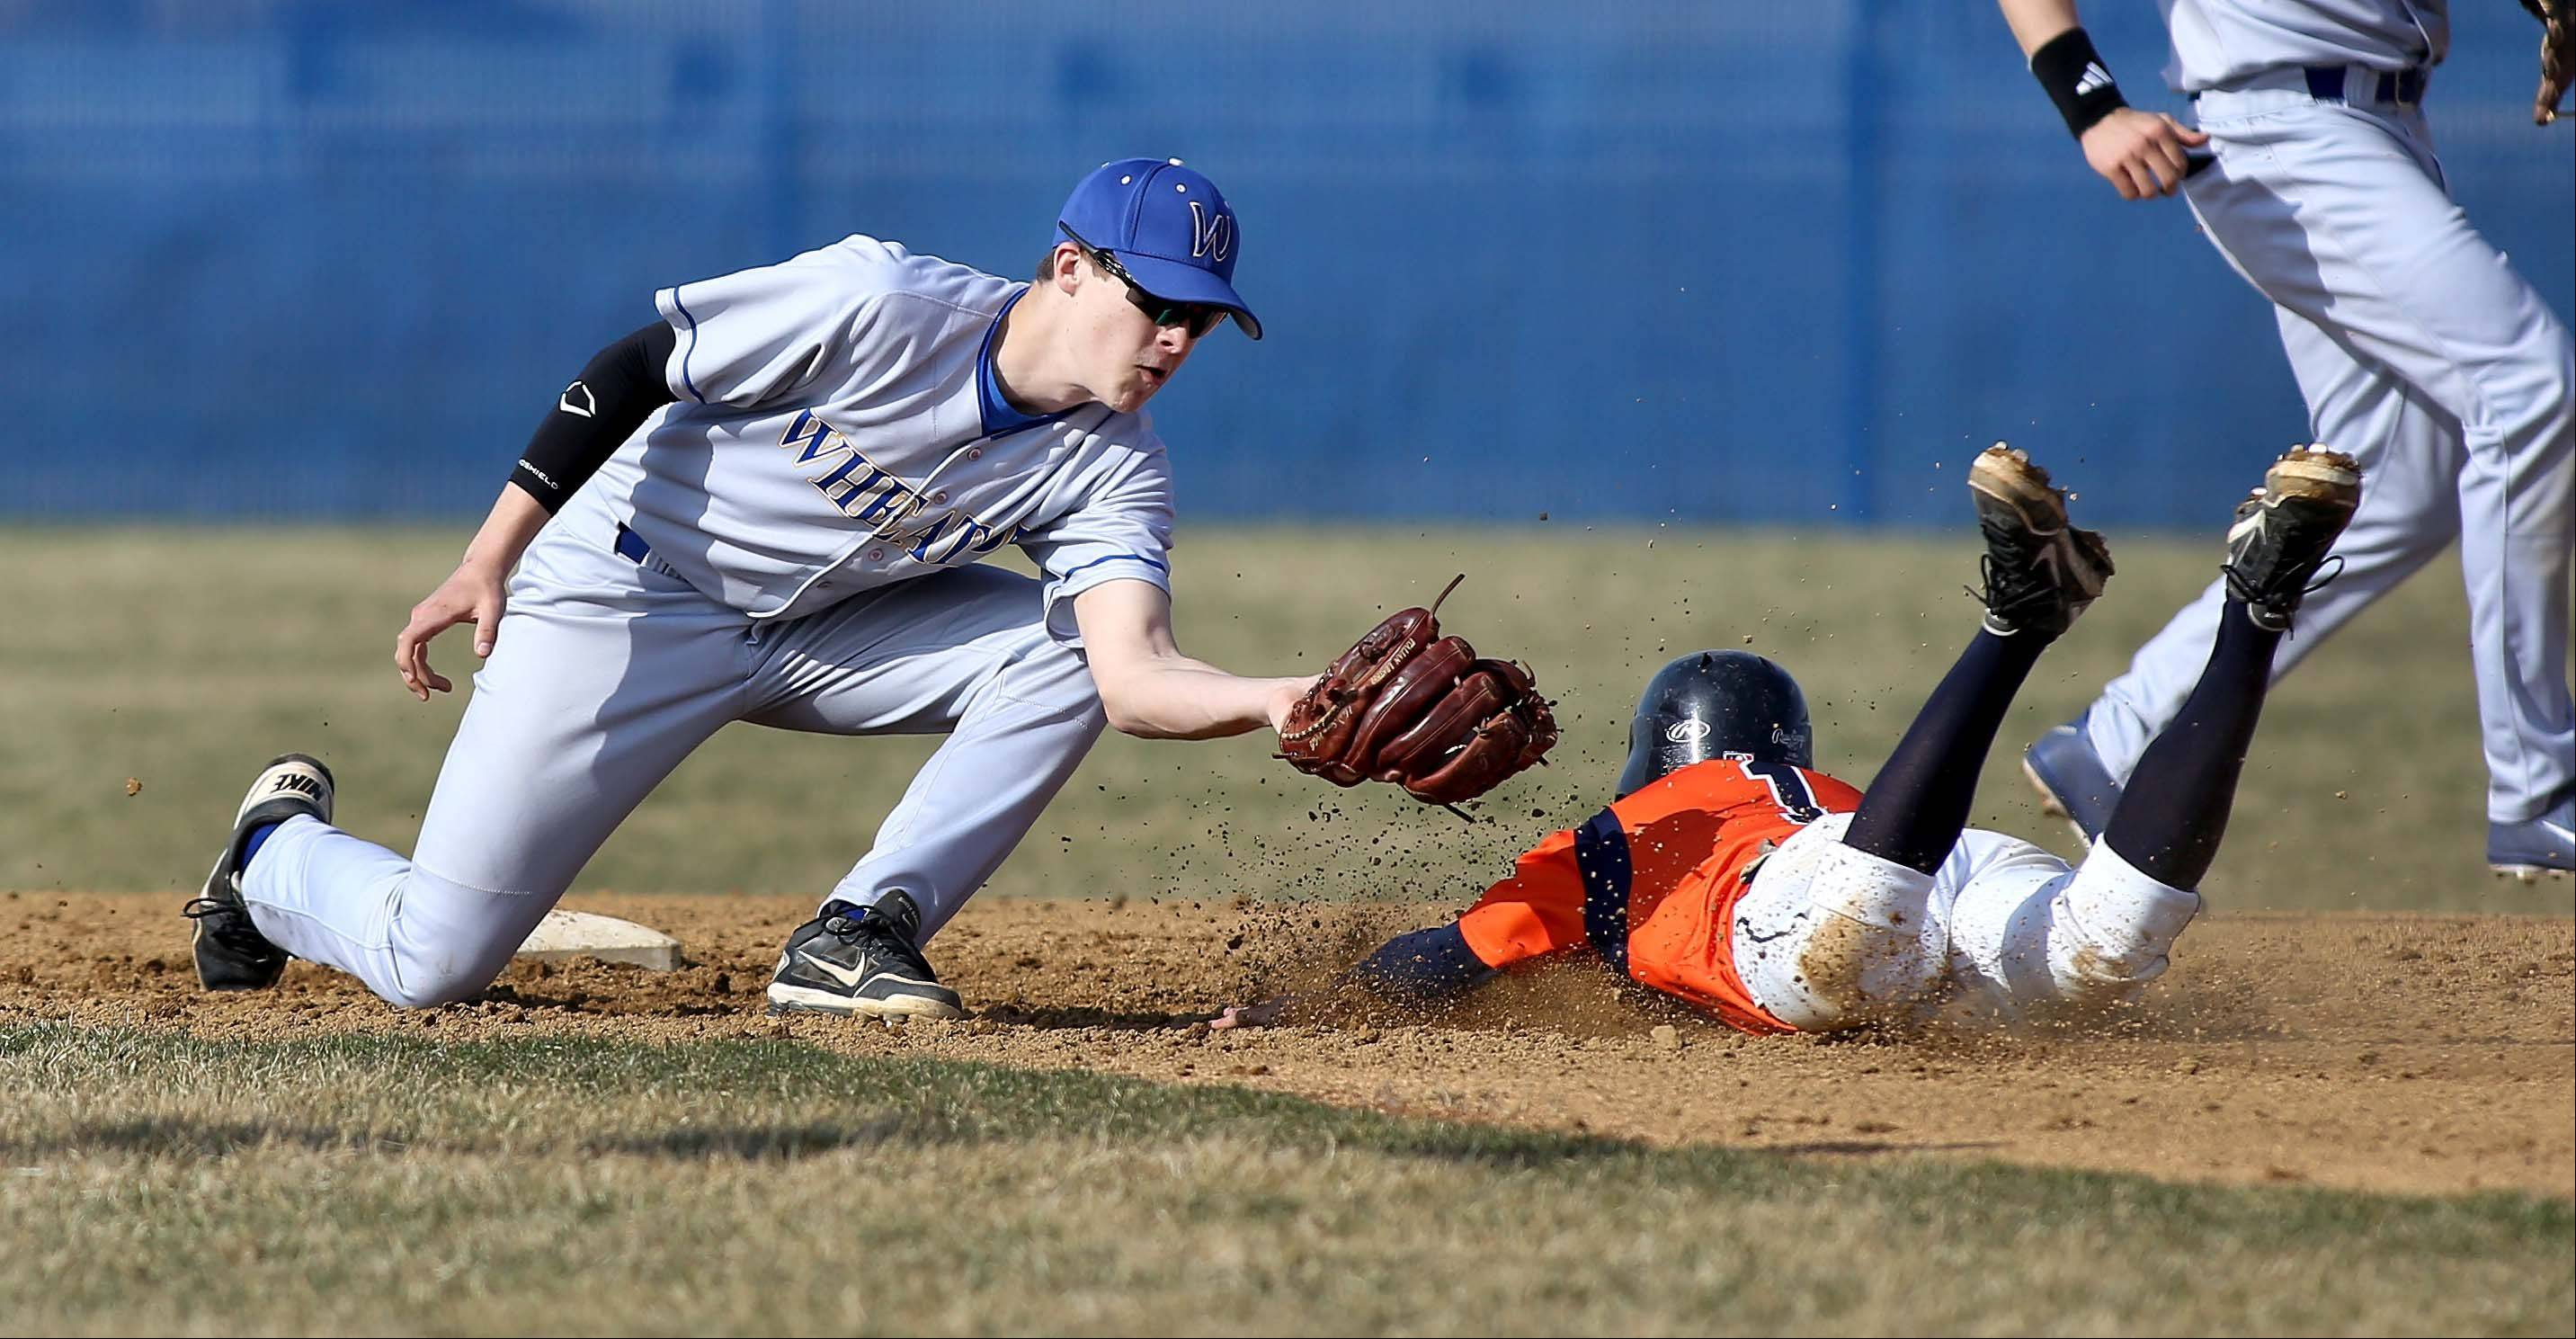 River Williams of Wheaton North tags out Ryan Krainz of Naperville North at second base in the first inning during baseball on Monday in Naperville.